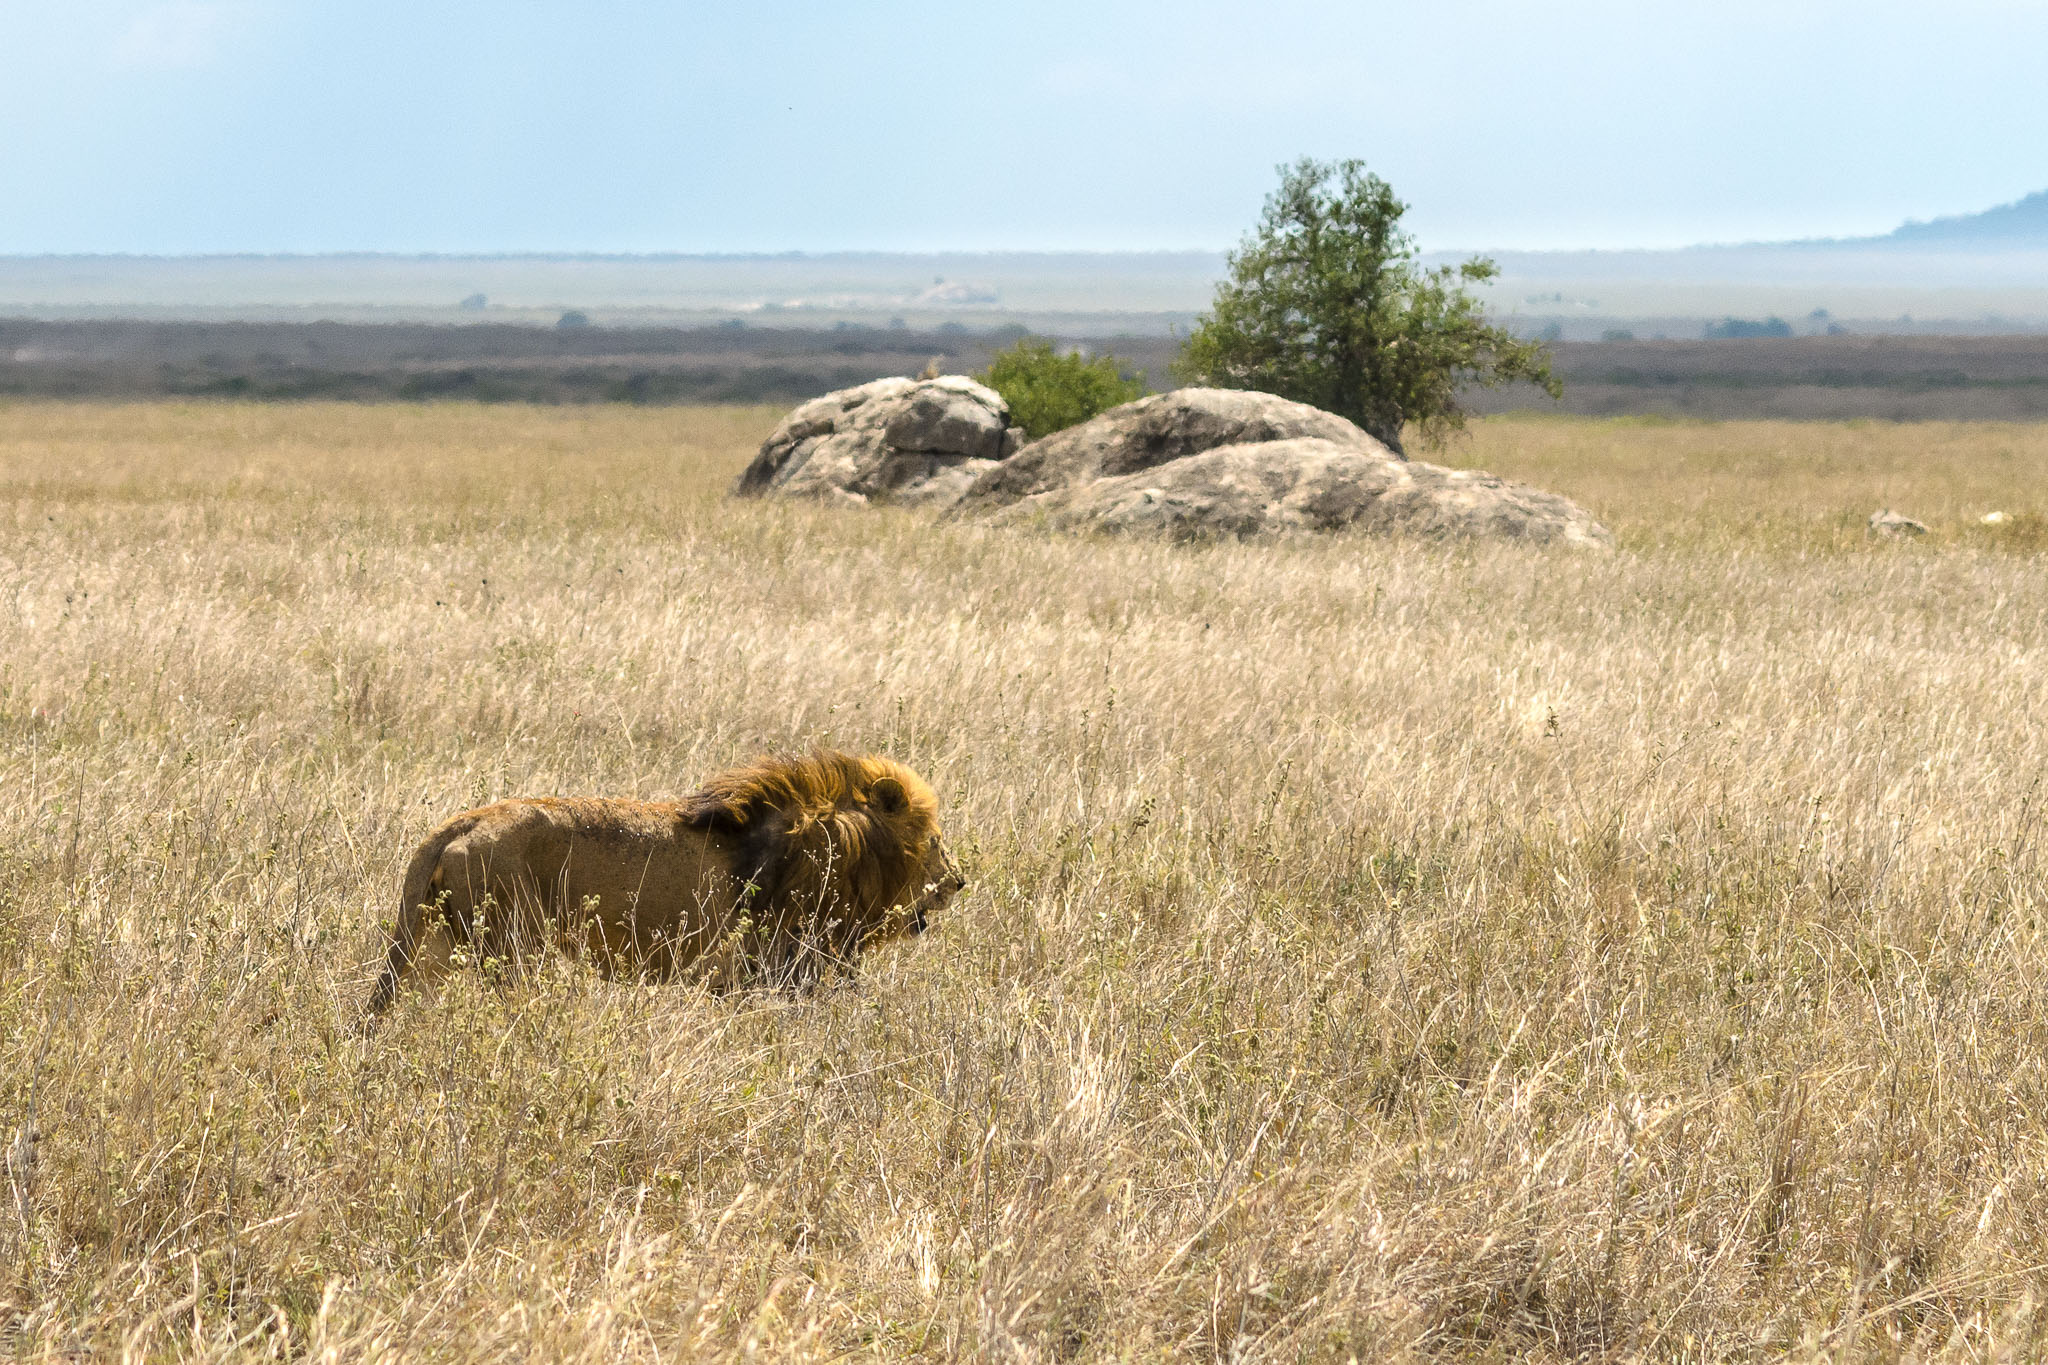 Nothing compares to seeing the confidence of a male line strutting through the grasses of the savanna. If I was that big and strong I guess I would be equally confident that nothing could hurt me.